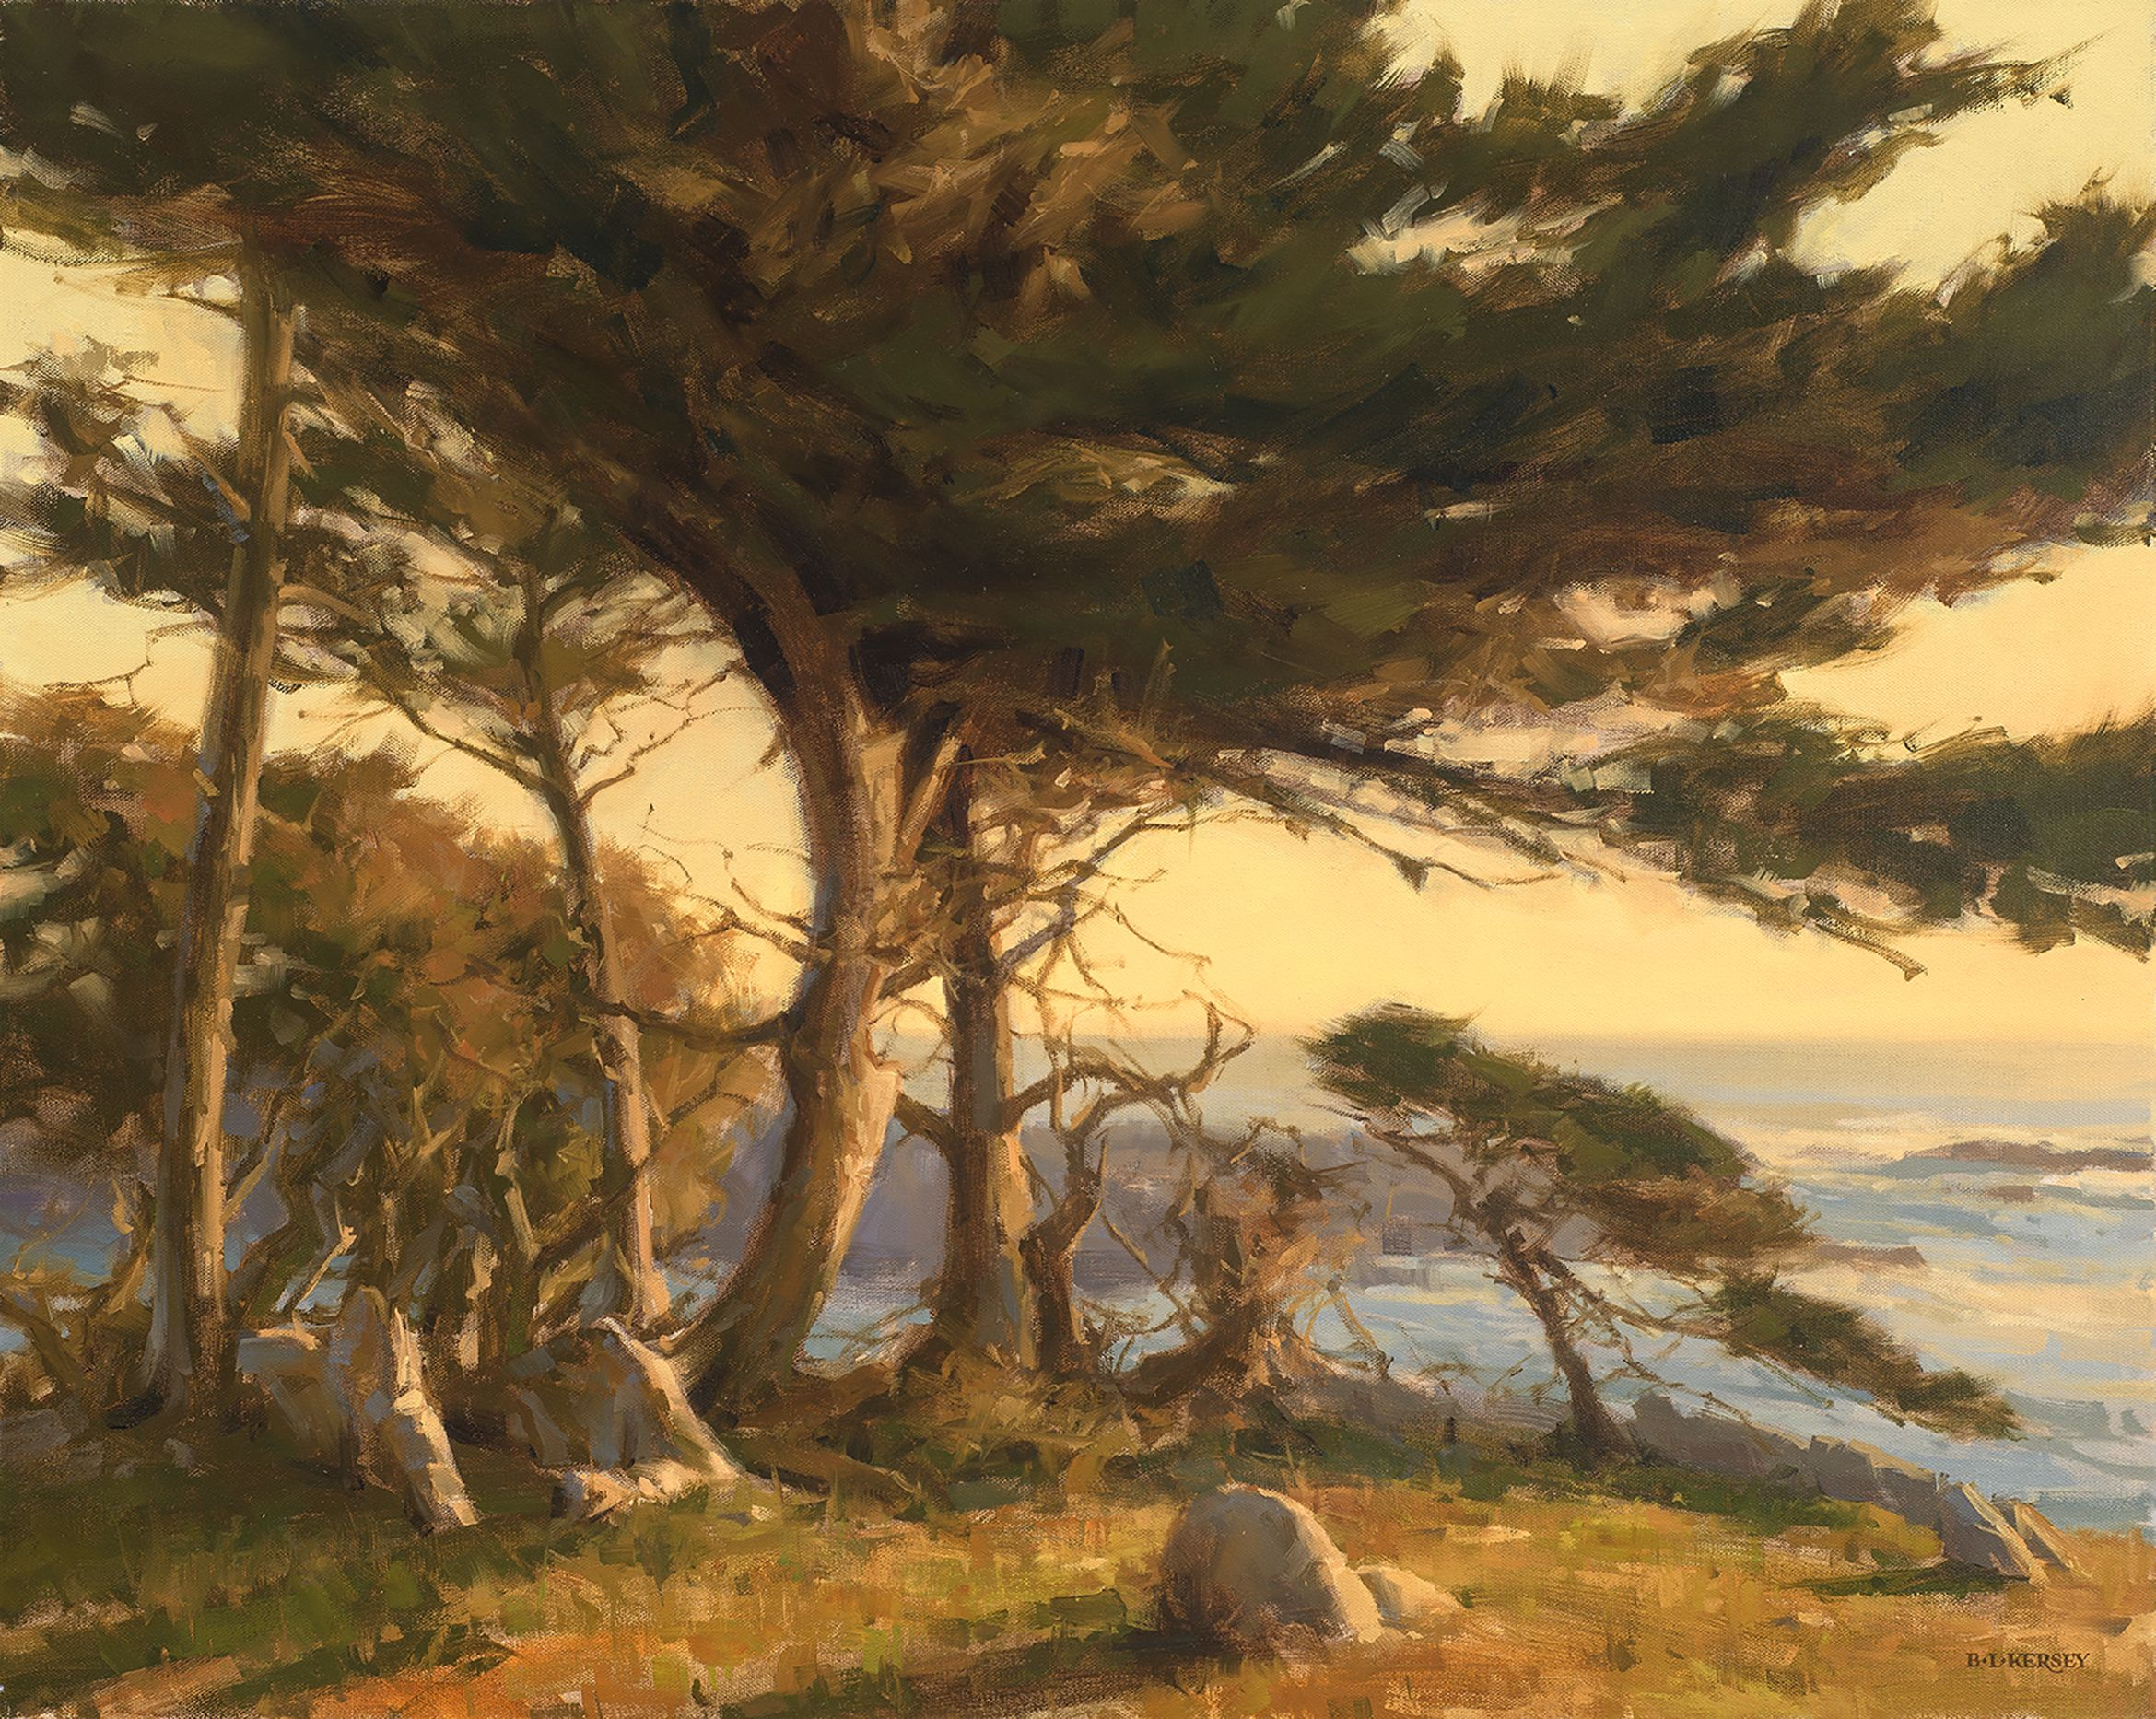 Plein Air Painting by Laurie Kersey Landscape, Southwest